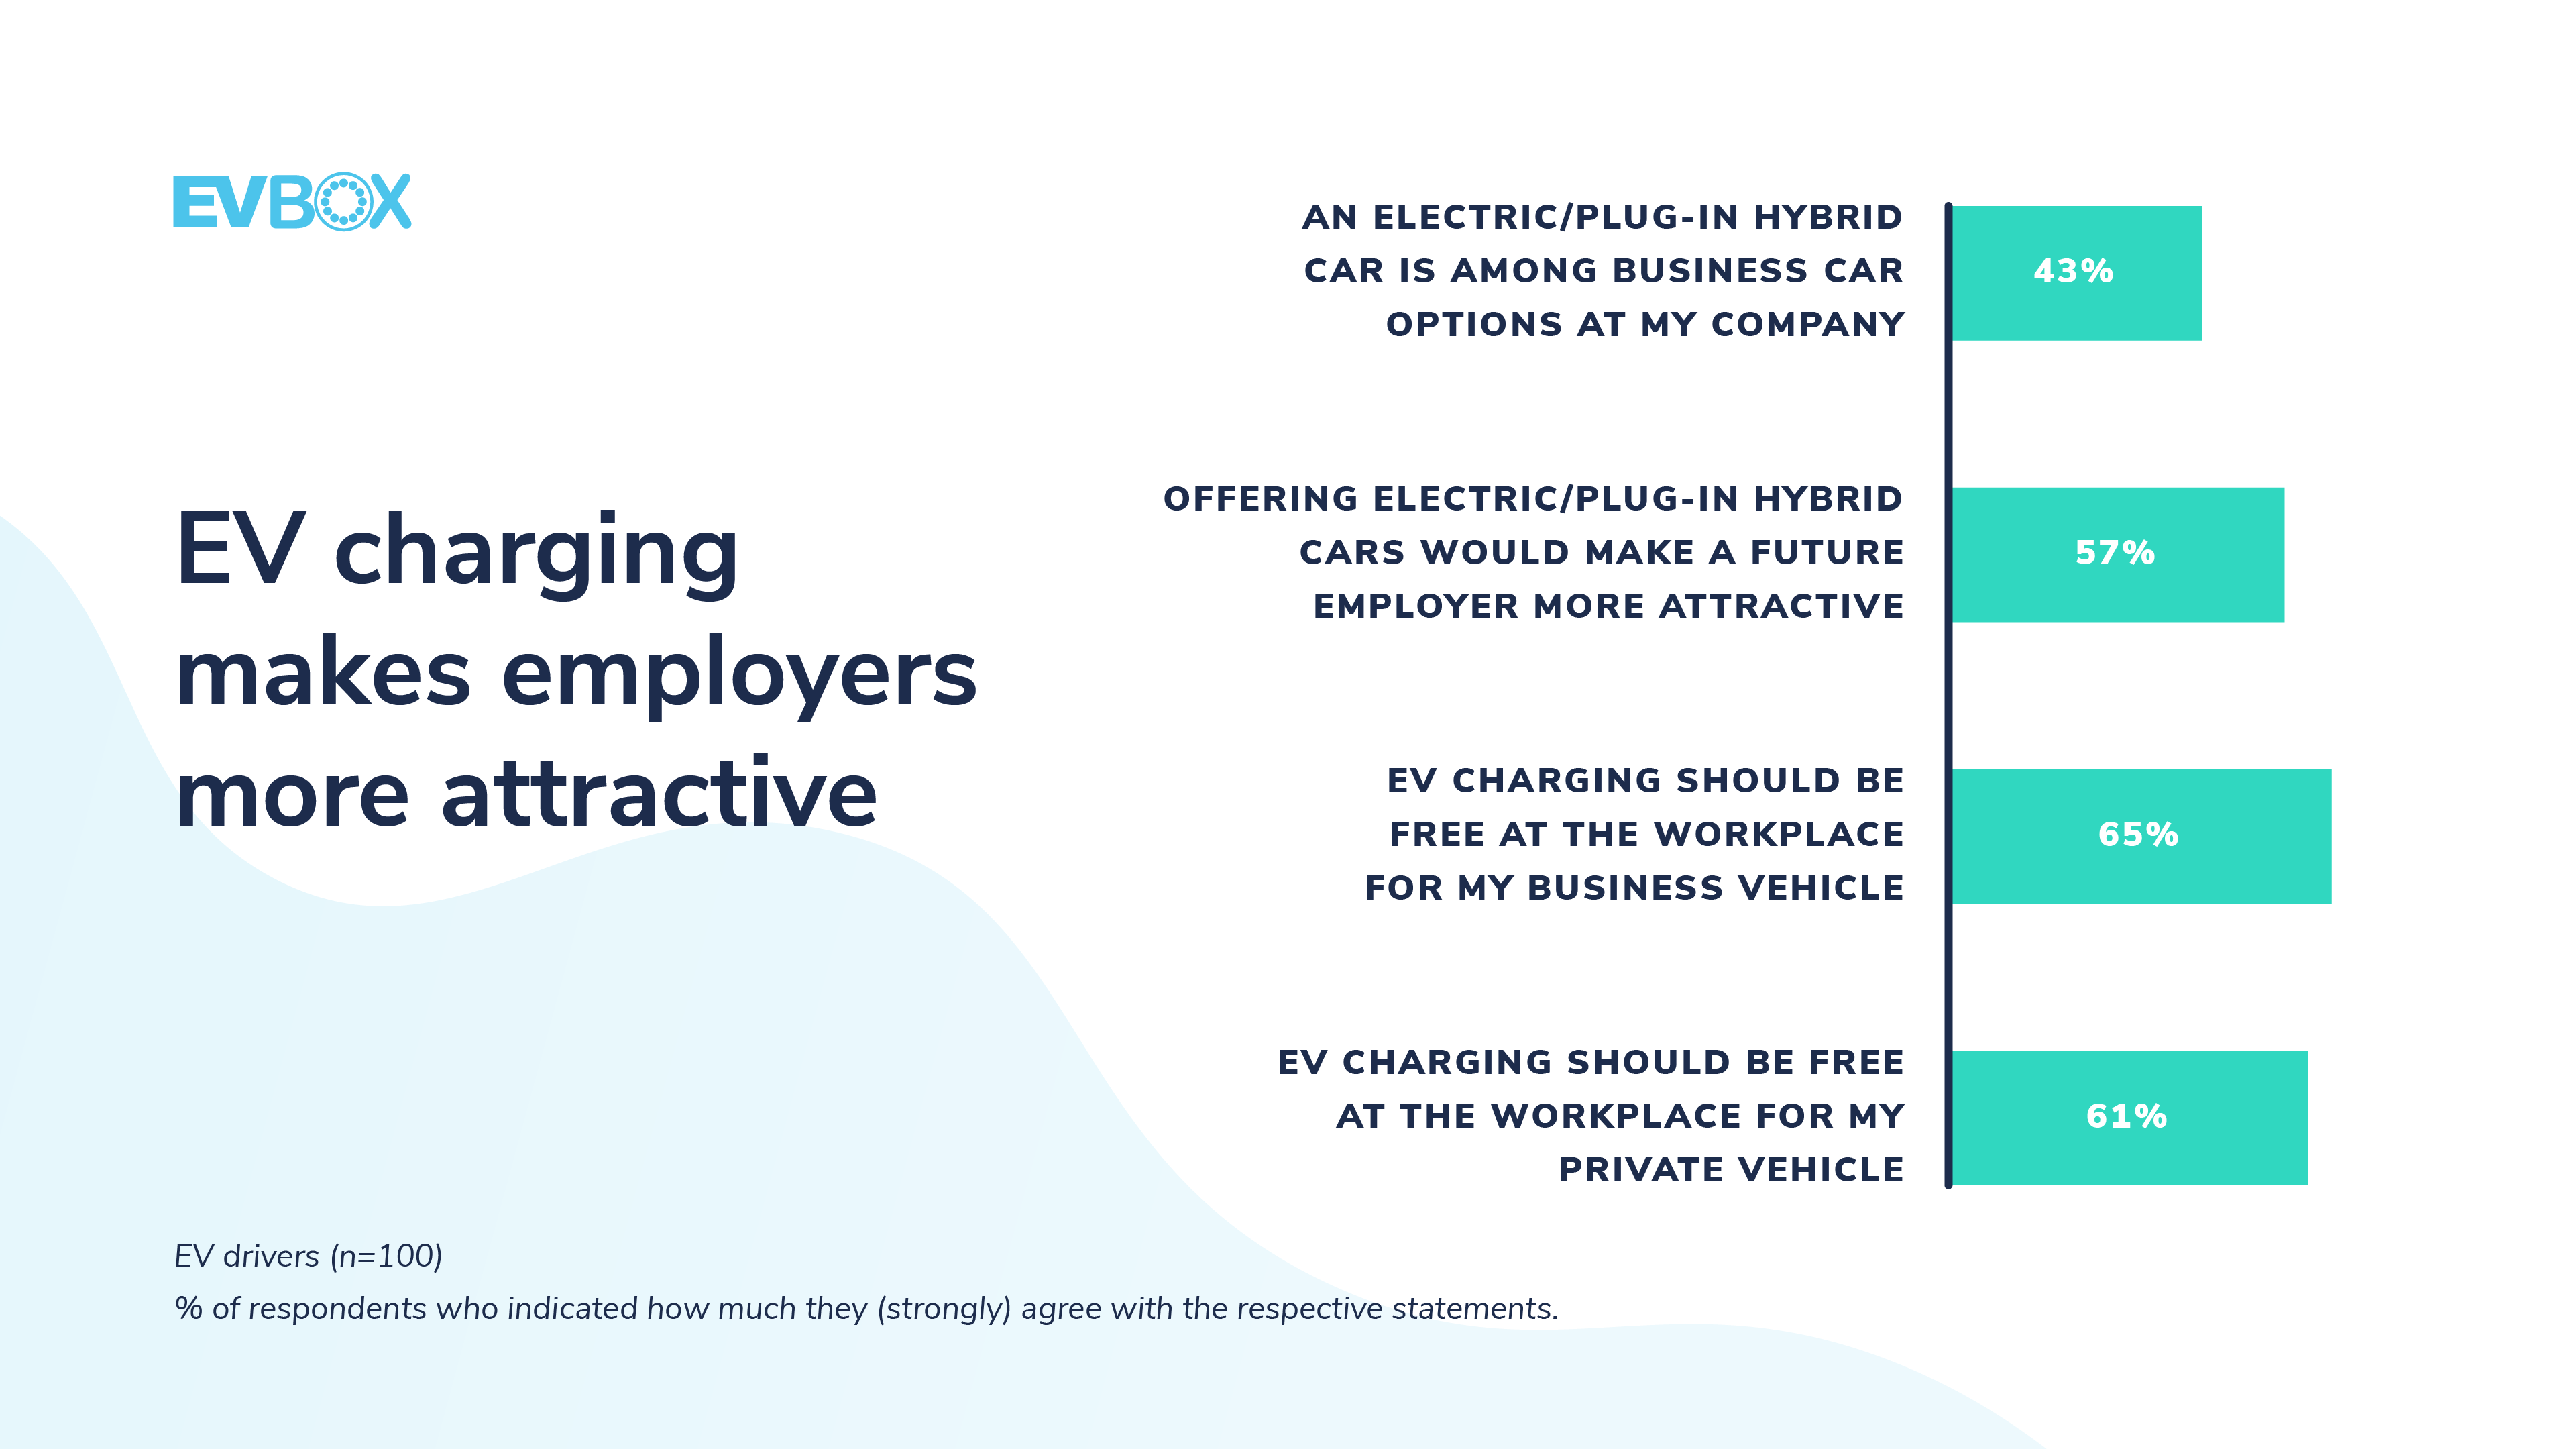 EV charging makes employers more attractive